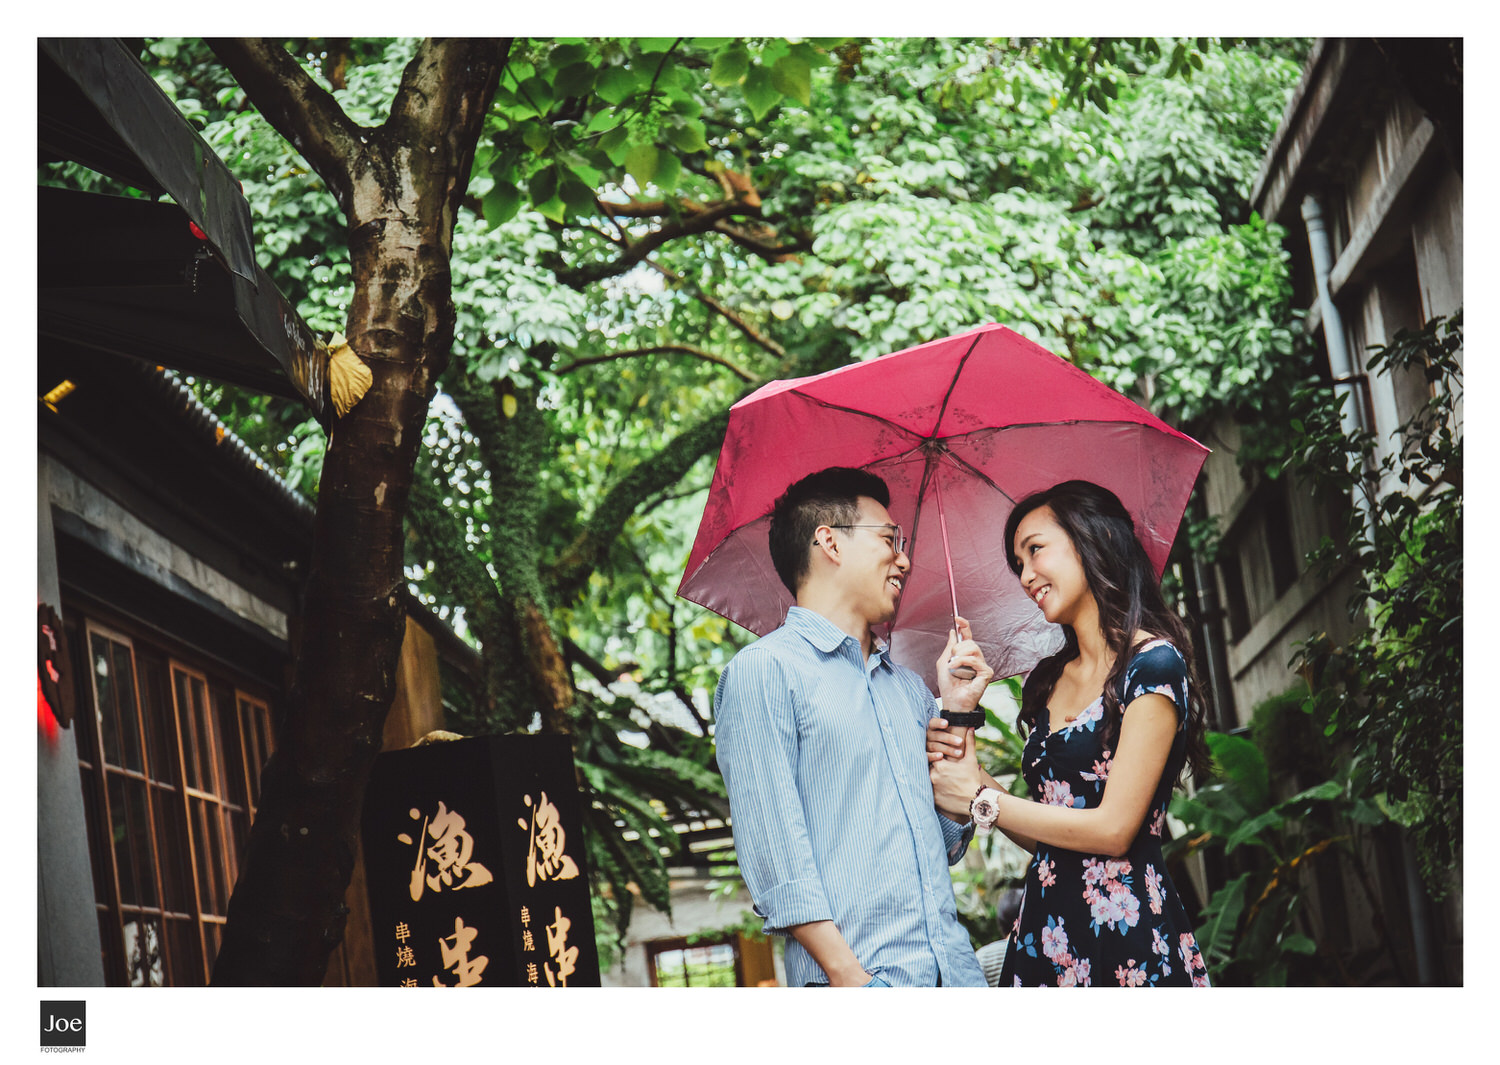 joe-fotography-engagement-photo-adrian-hilpy-39.jpg